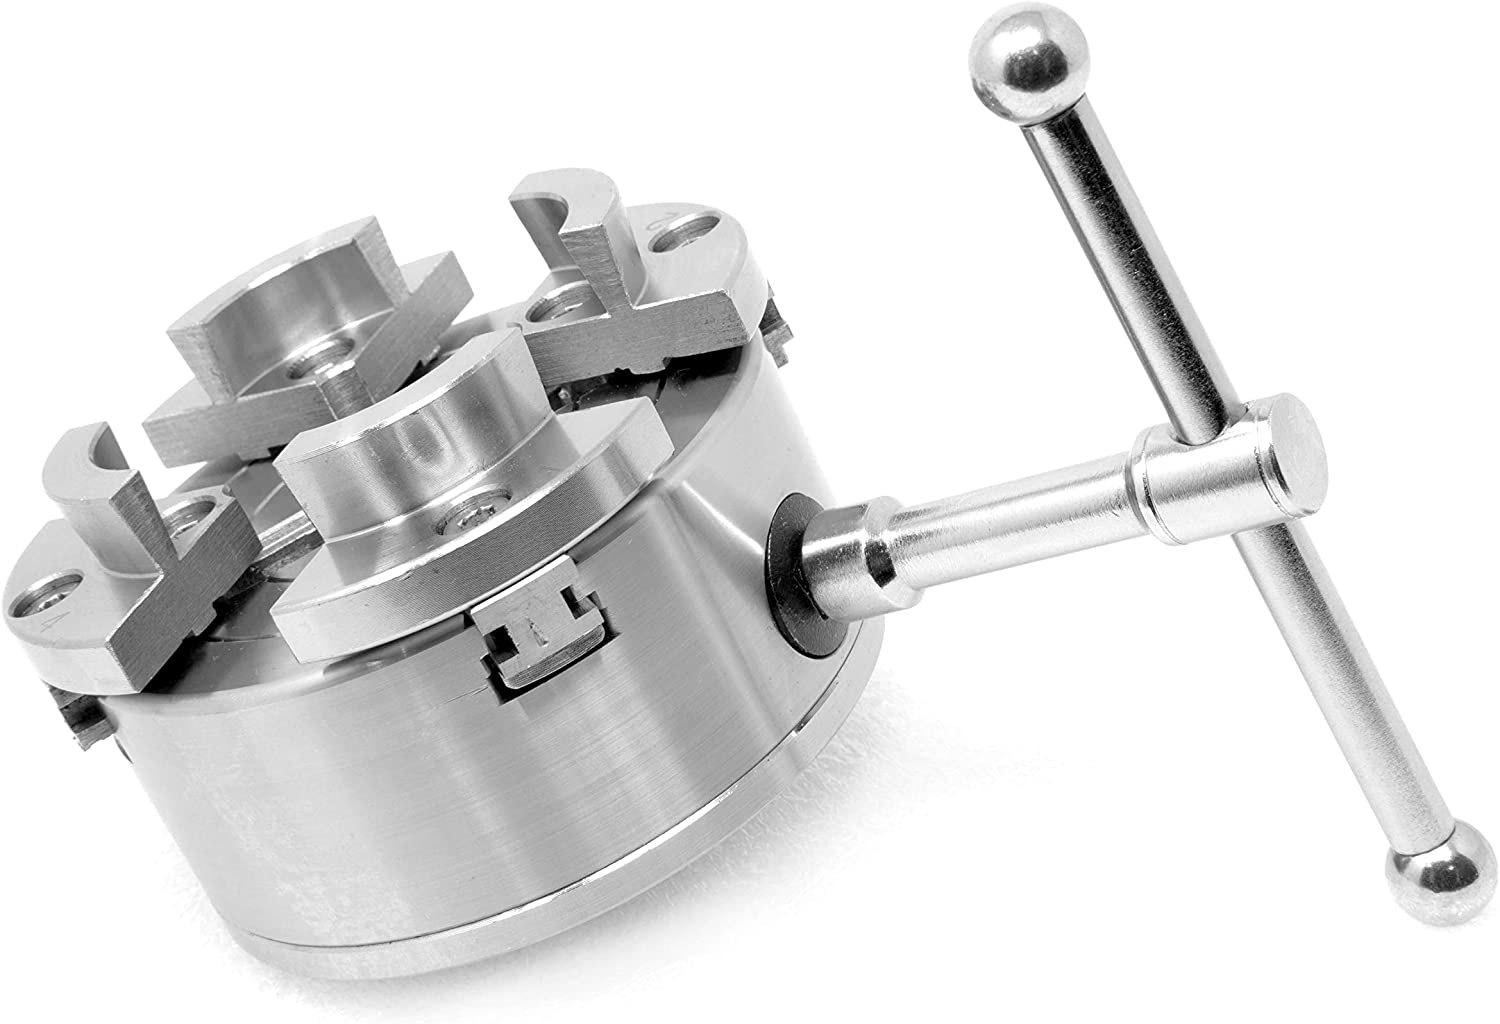 WEN LA434D 2.5-Inch Extended Lathe Chuck Jaws with Internal Square Grip and External Dovetail Profile